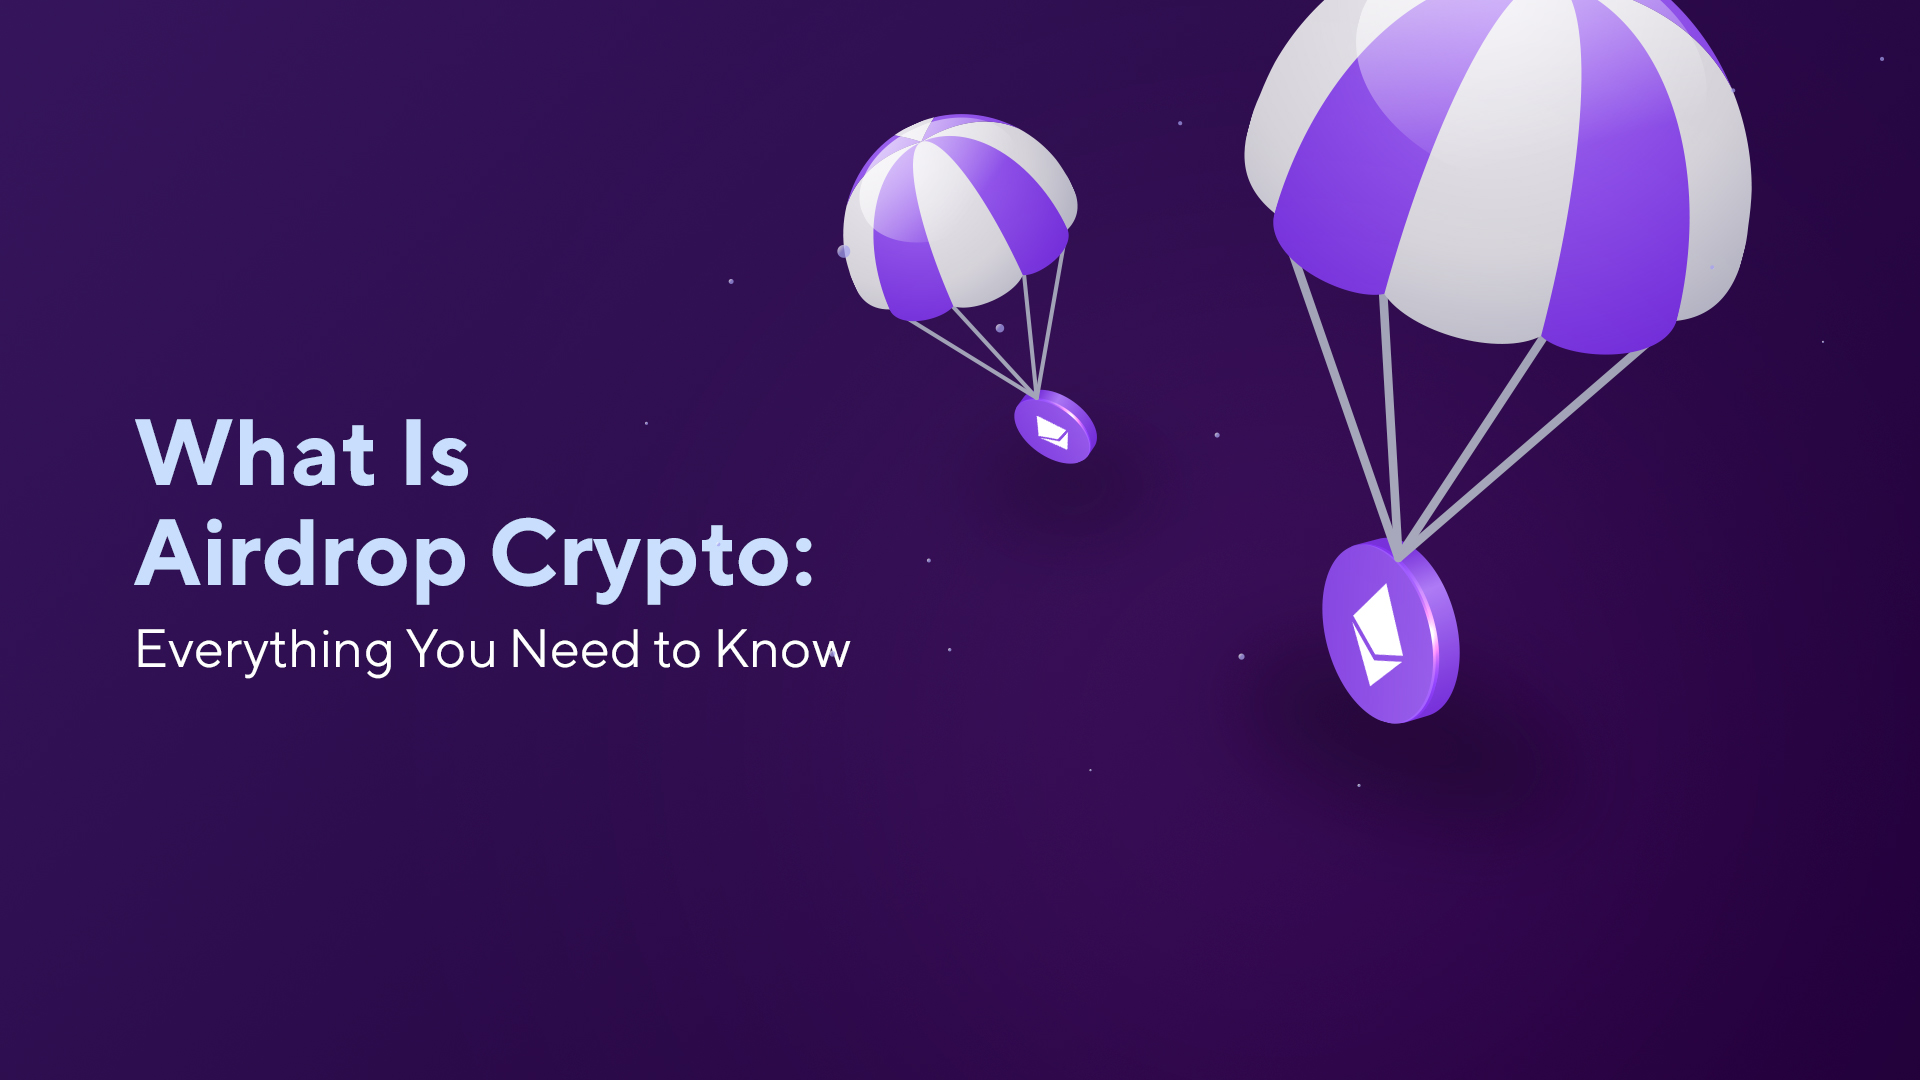 What Is Airdrop Crypto: Everything You Need to Know